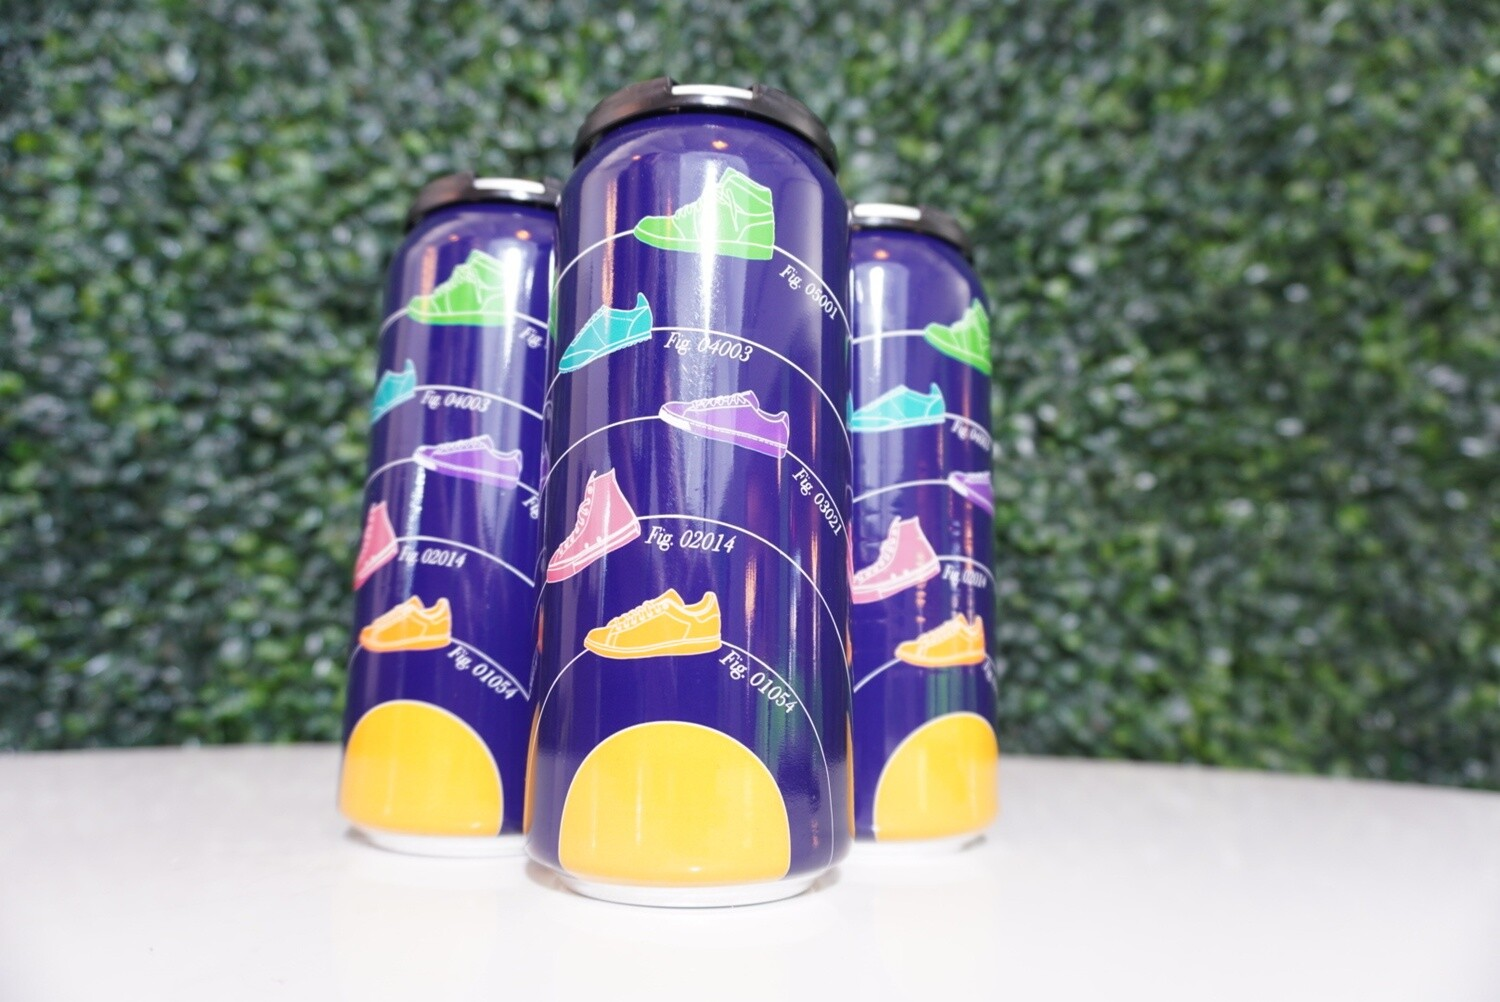 Wild Mind Artisan Ales - Planetary Shoes - Fruited Sour - 4.5% ABV - 16oz Can